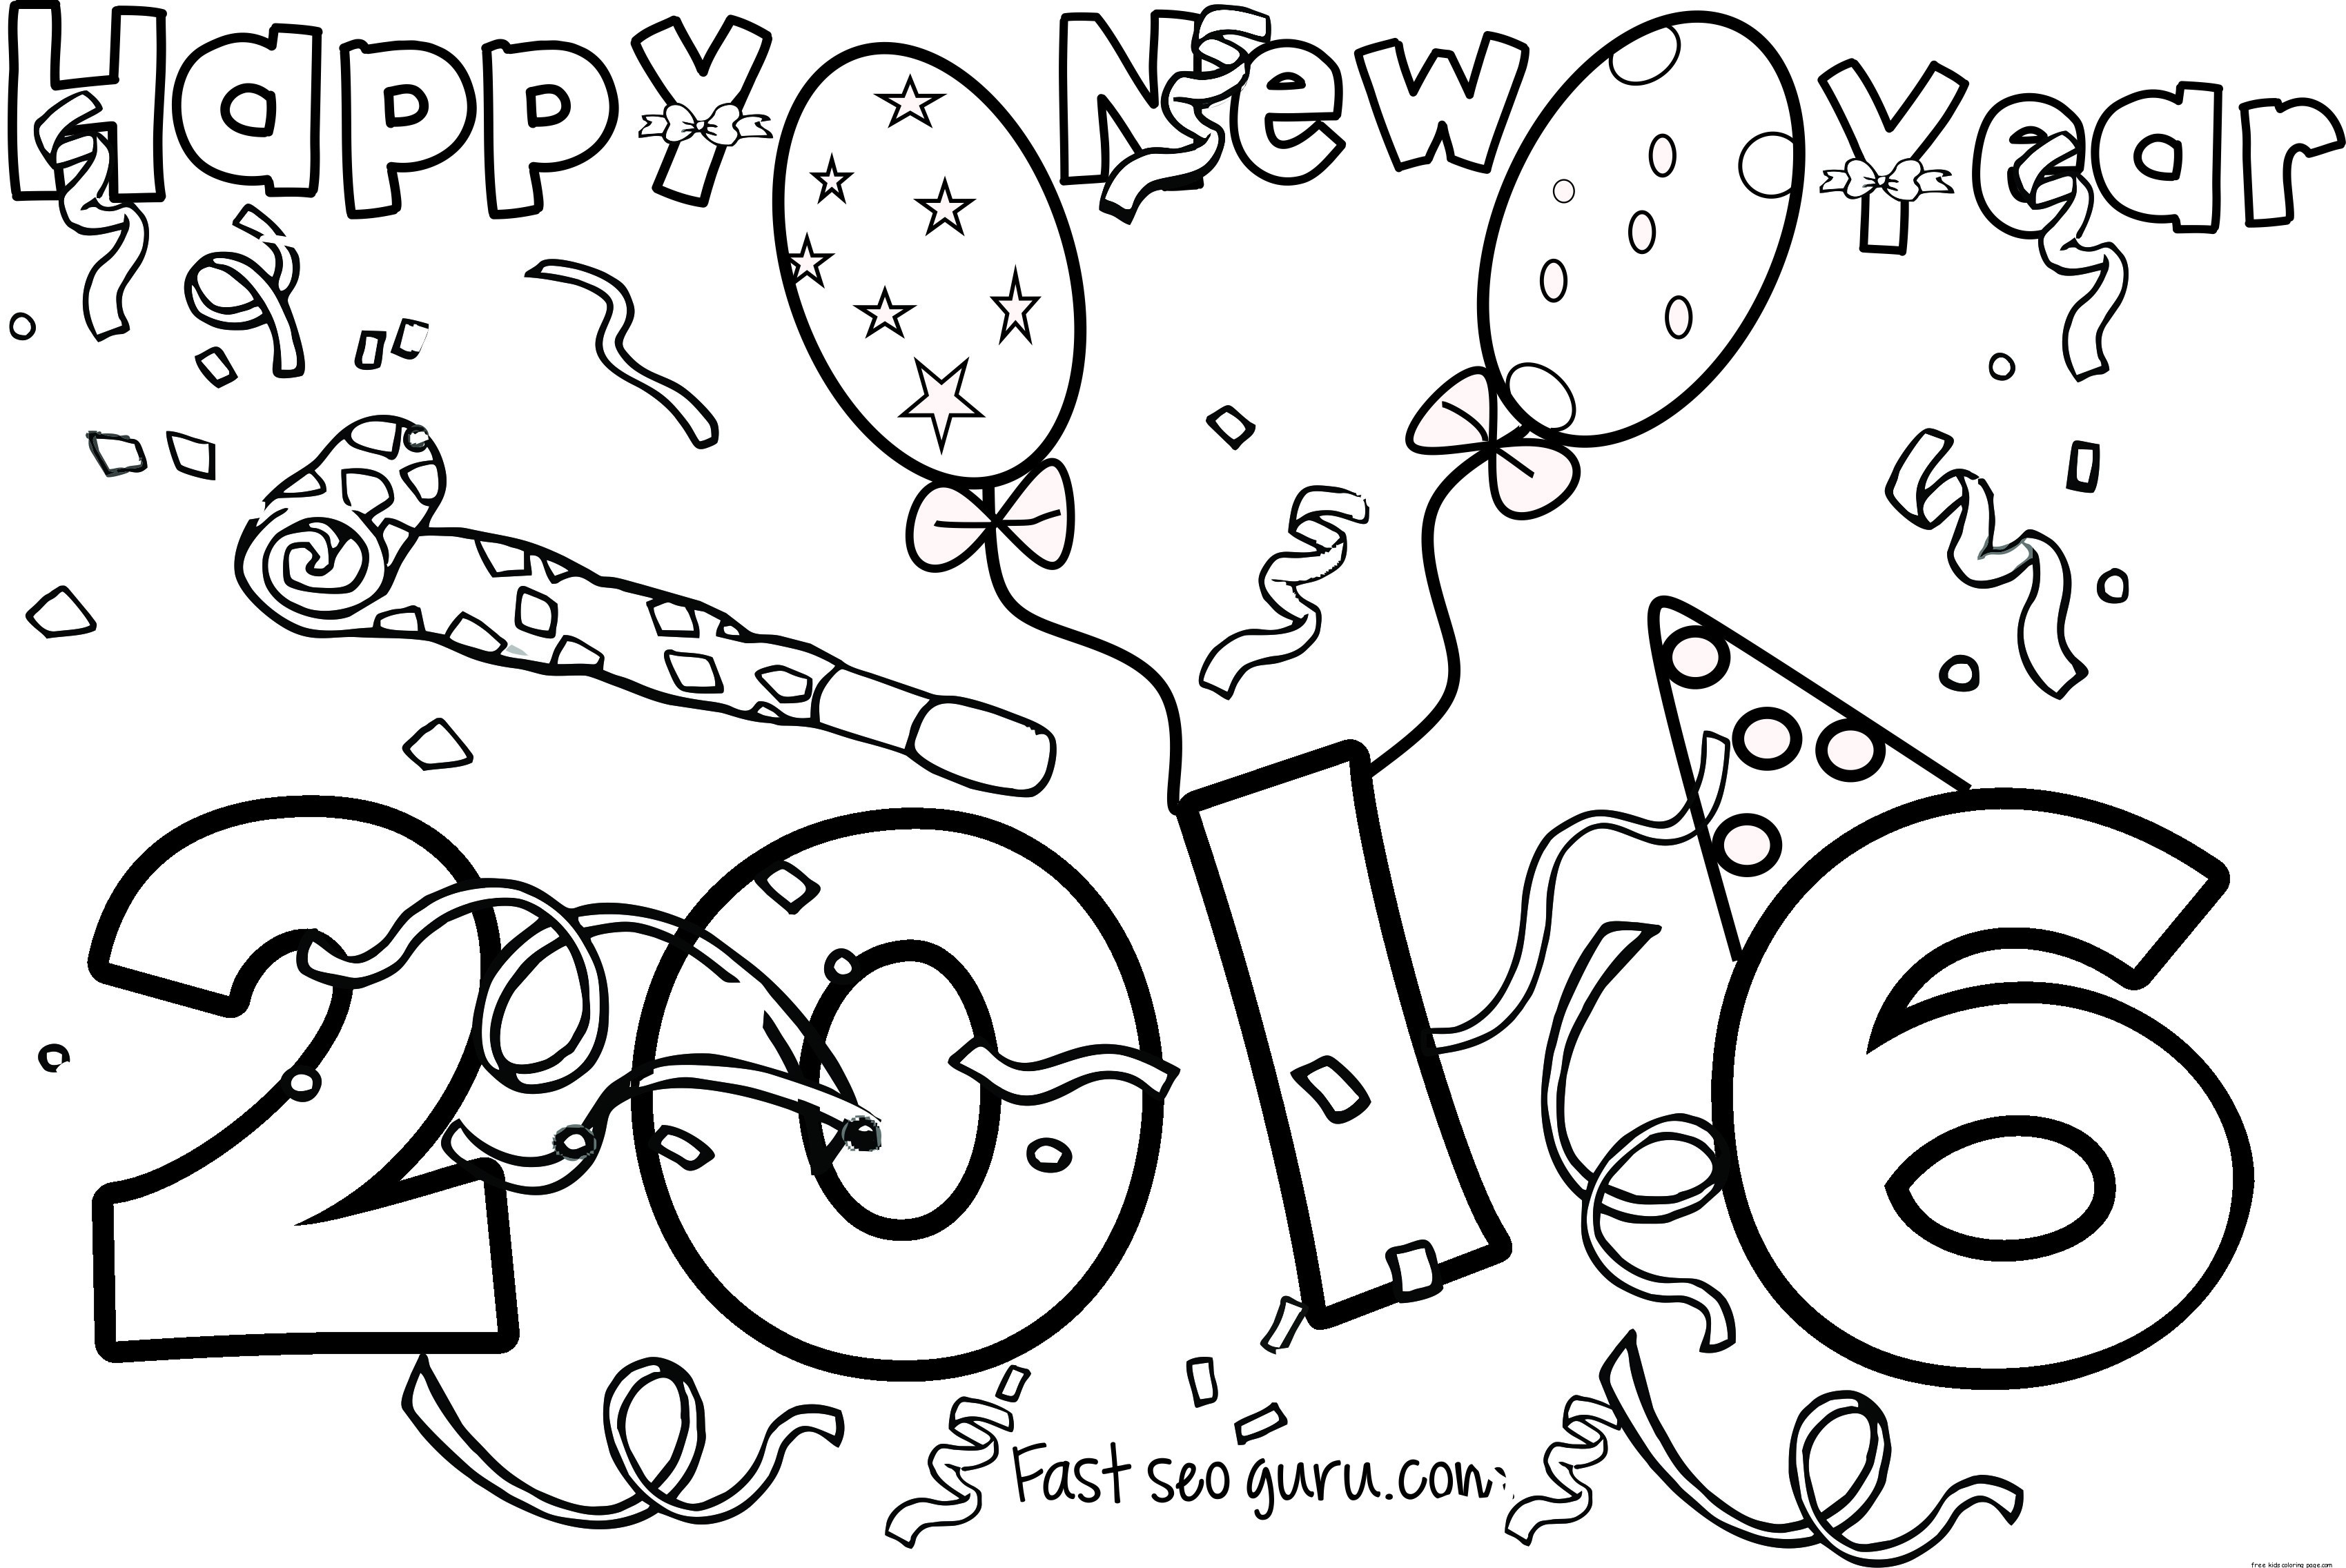 coloring pages new years - happy new year 2016 printable coloring pages free